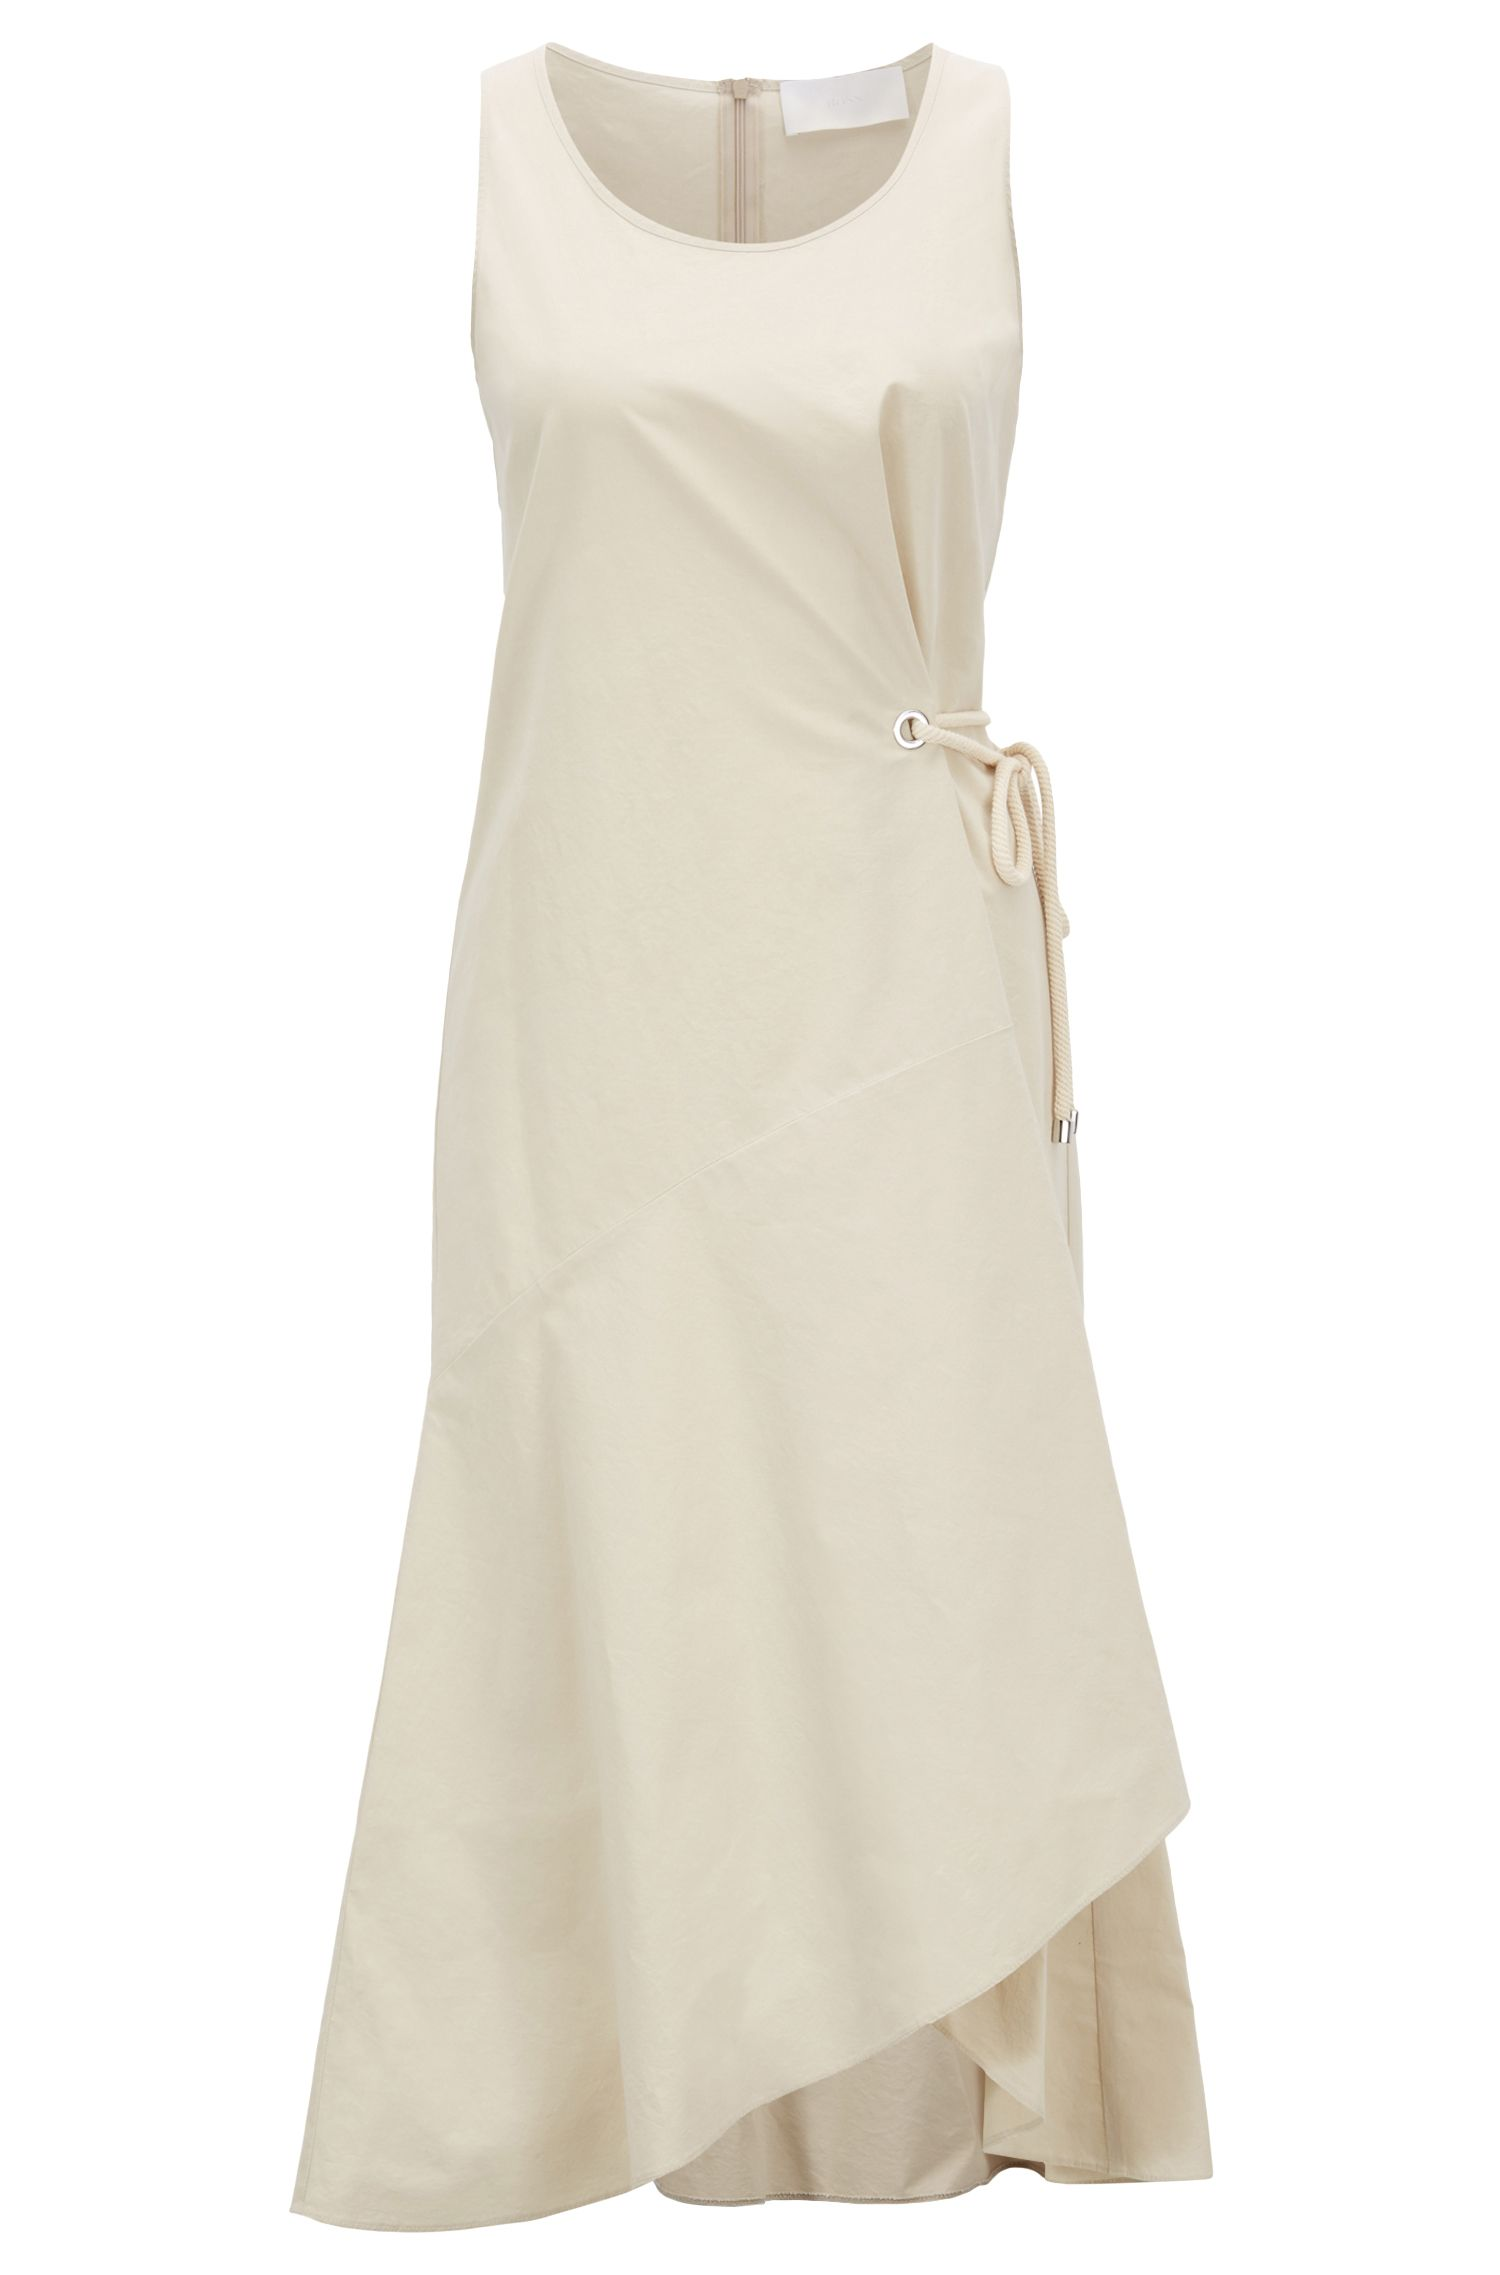 Cotton-blend dress with volant detail